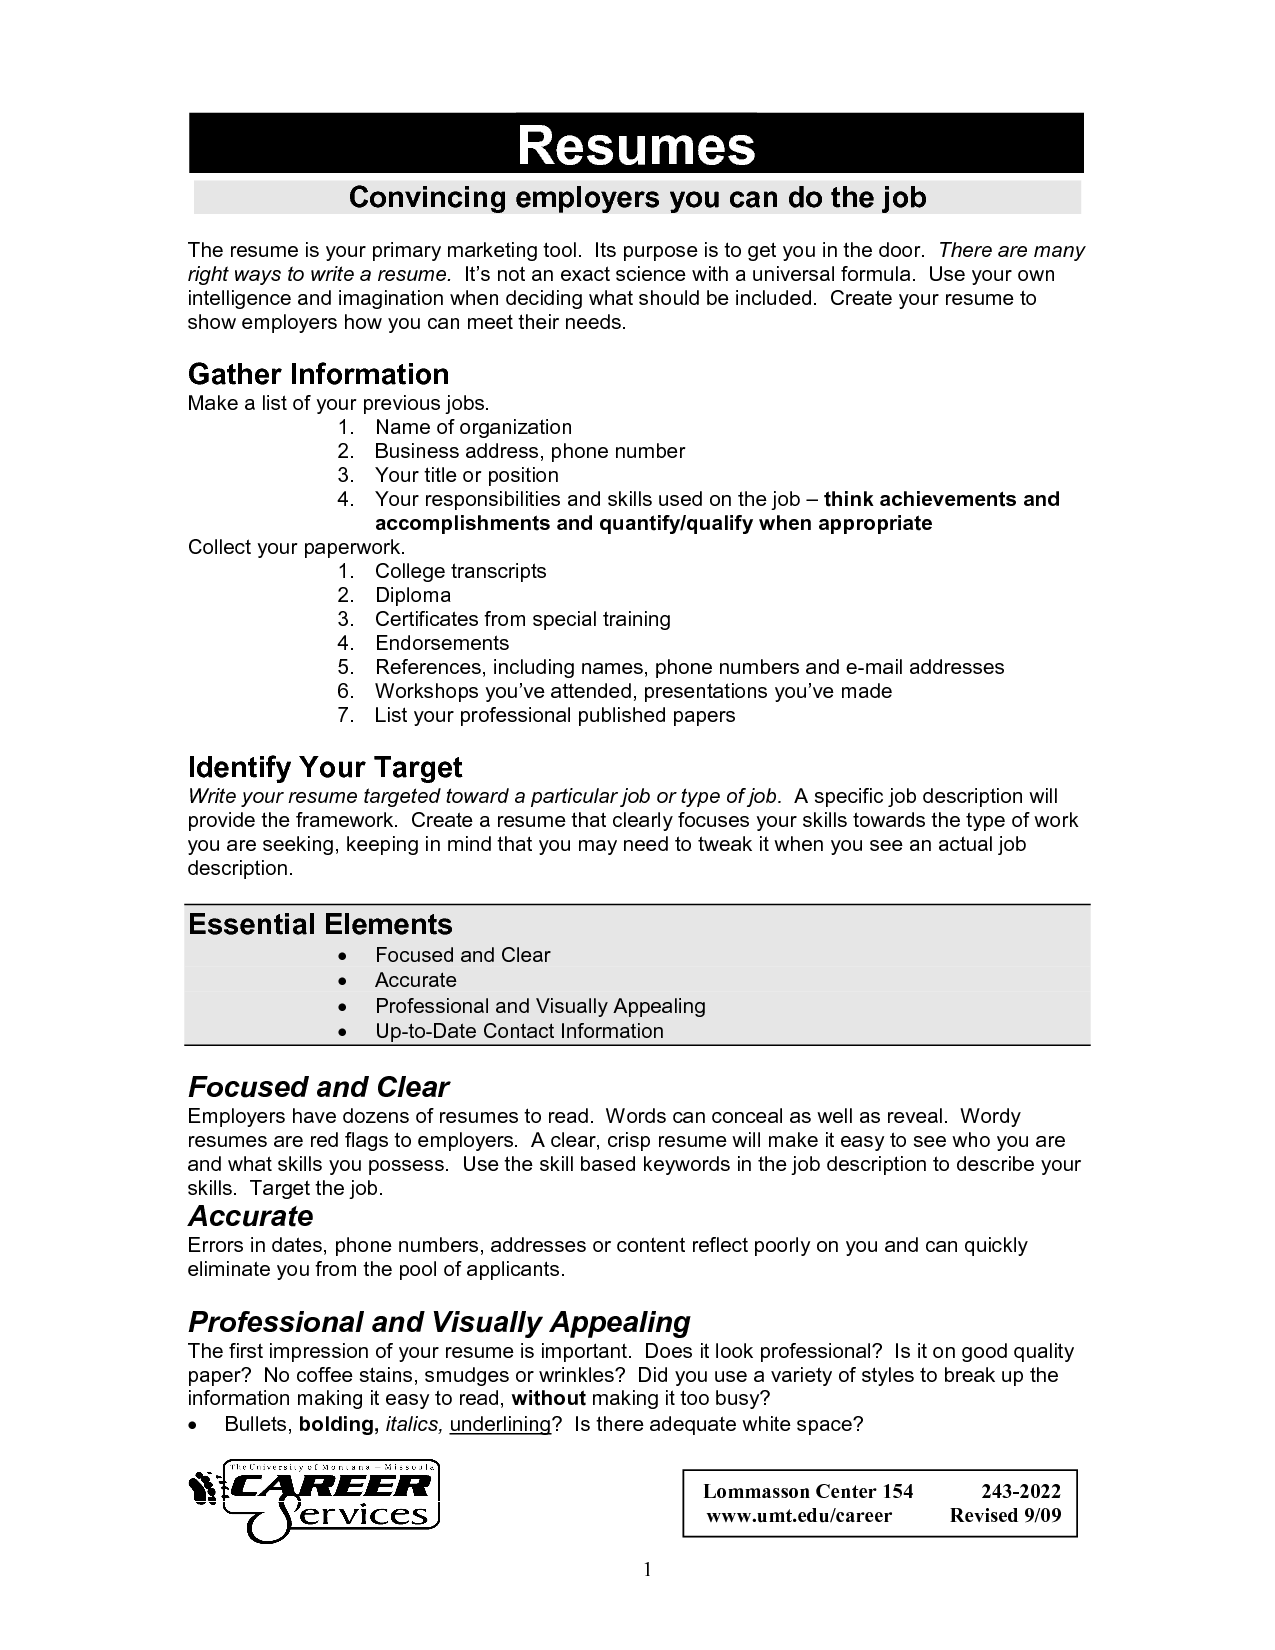 What Good Free Resume Builder Templates And Best Writing Software  How To Write A Modern Resume